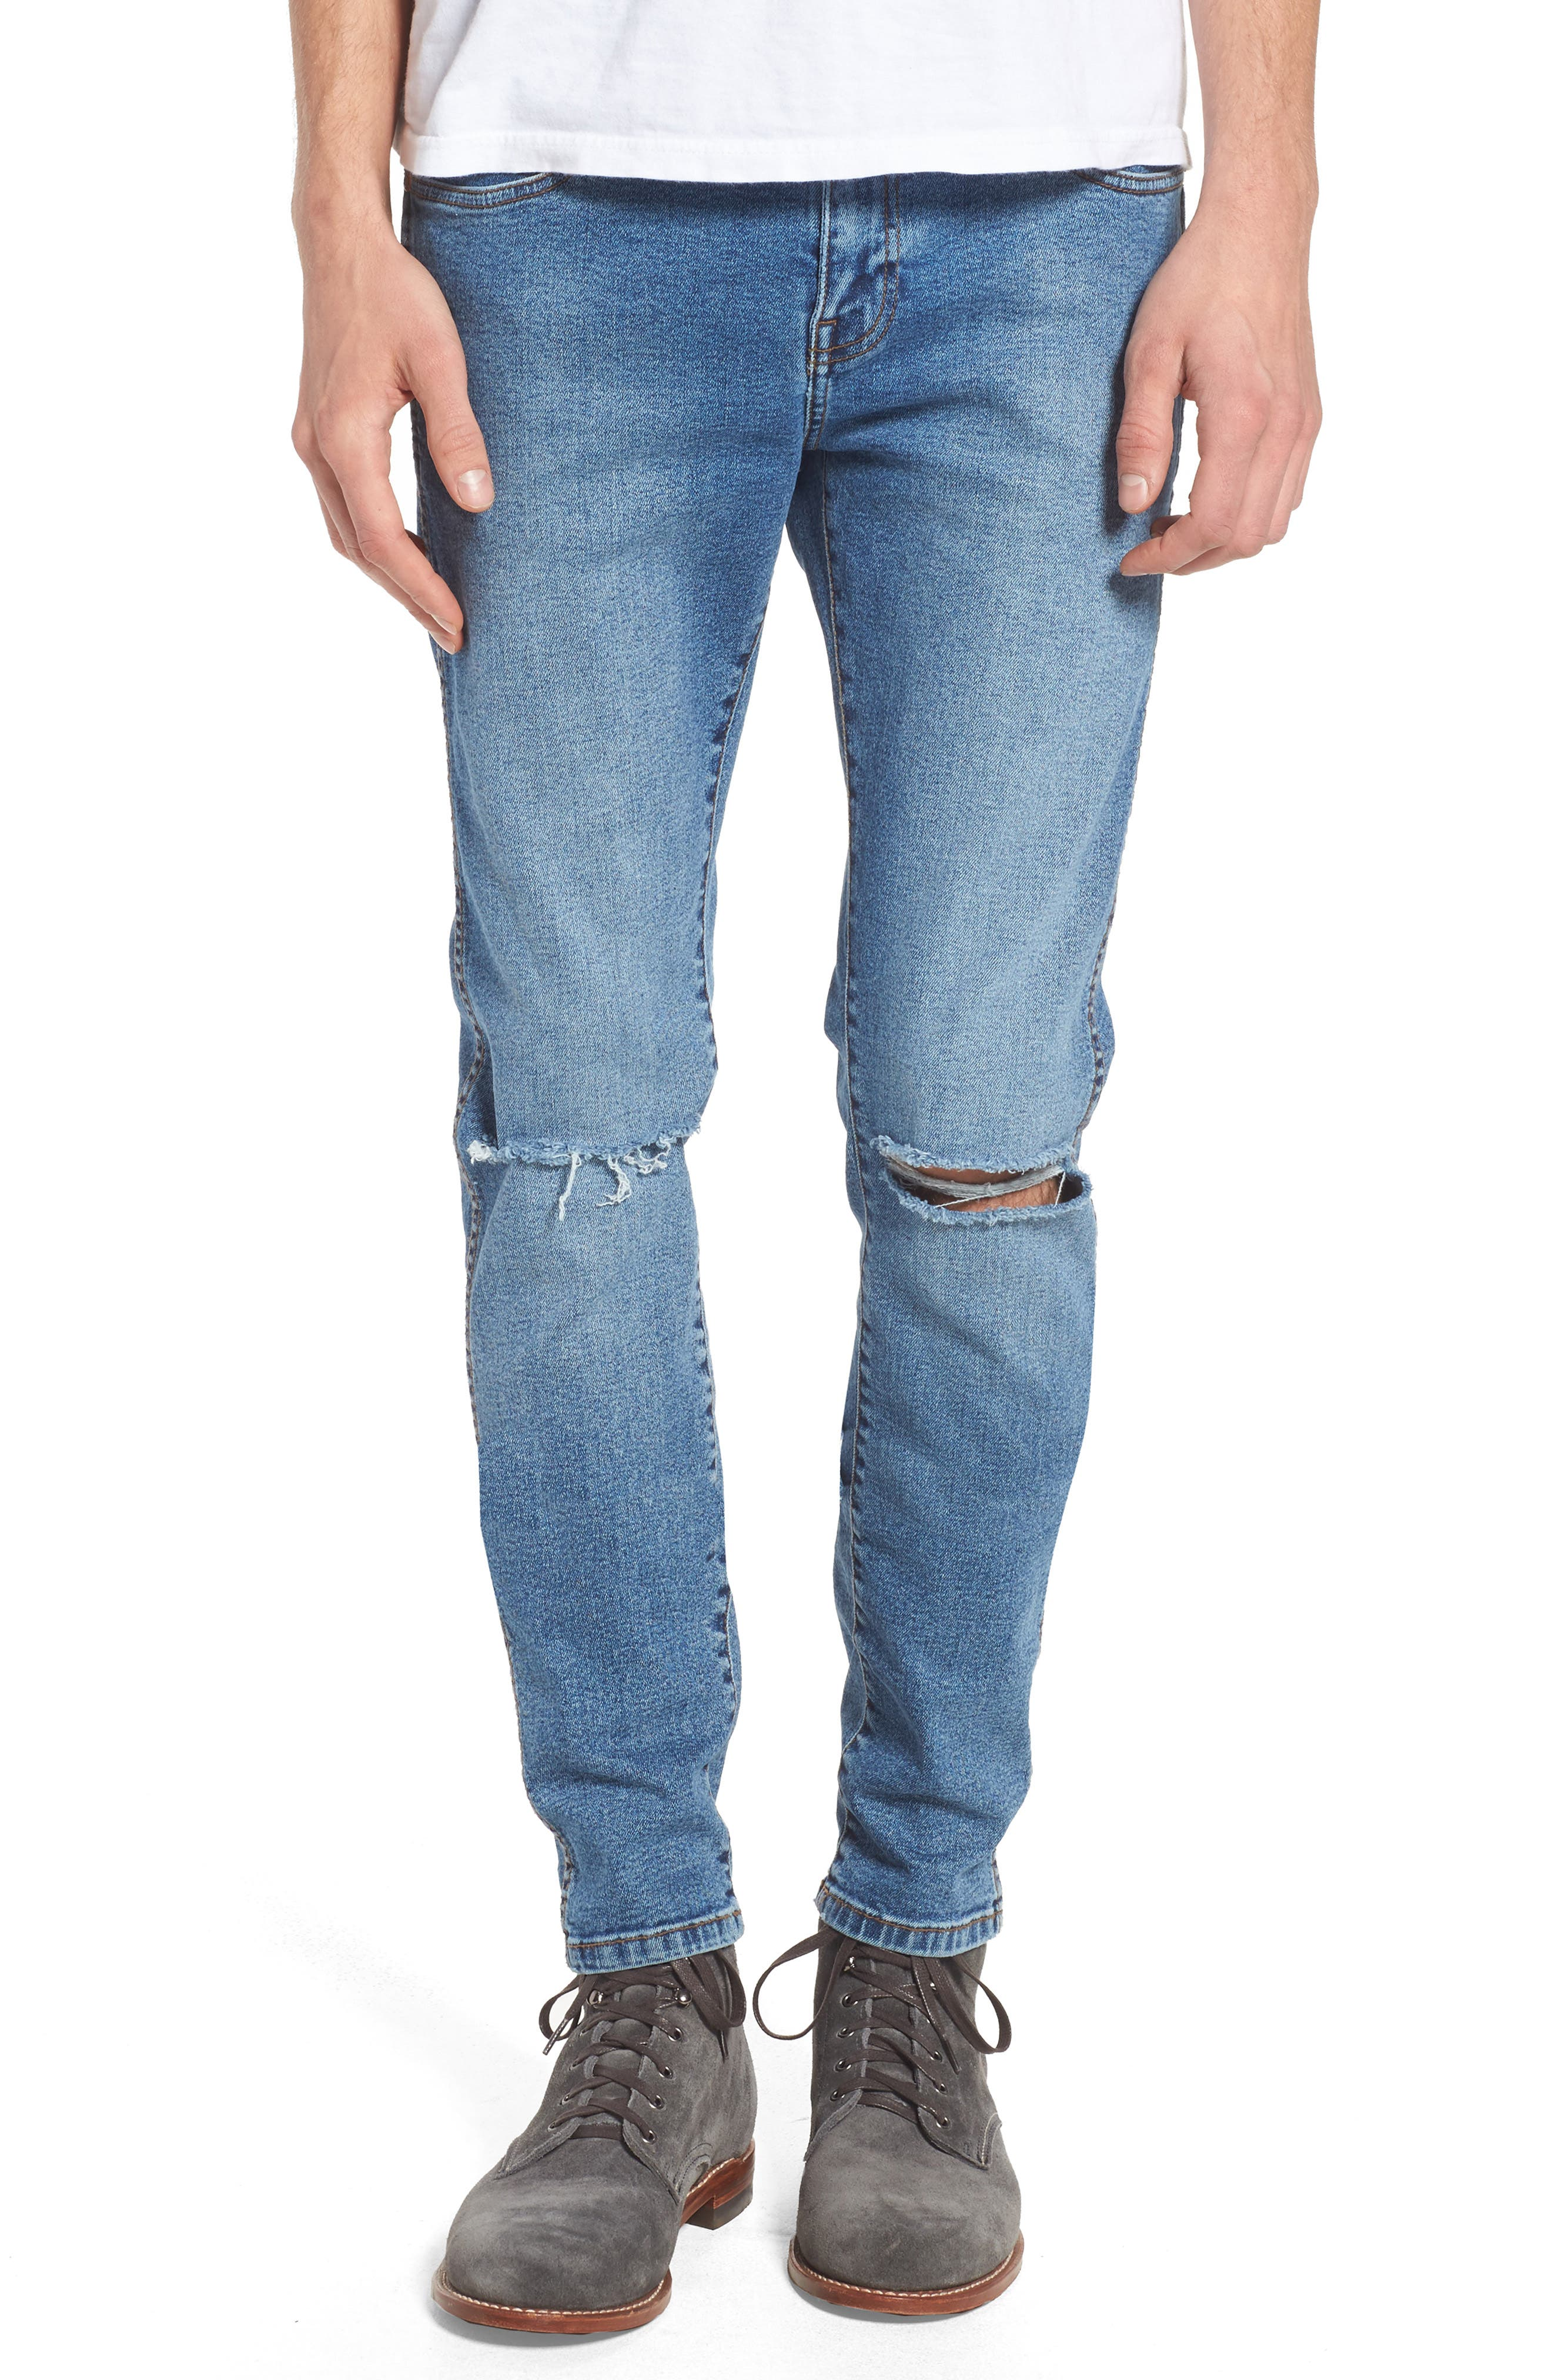 Snap Skinny Fit Jeans,                             Main thumbnail 1, color,                             LIGHT STONE DESTROYED